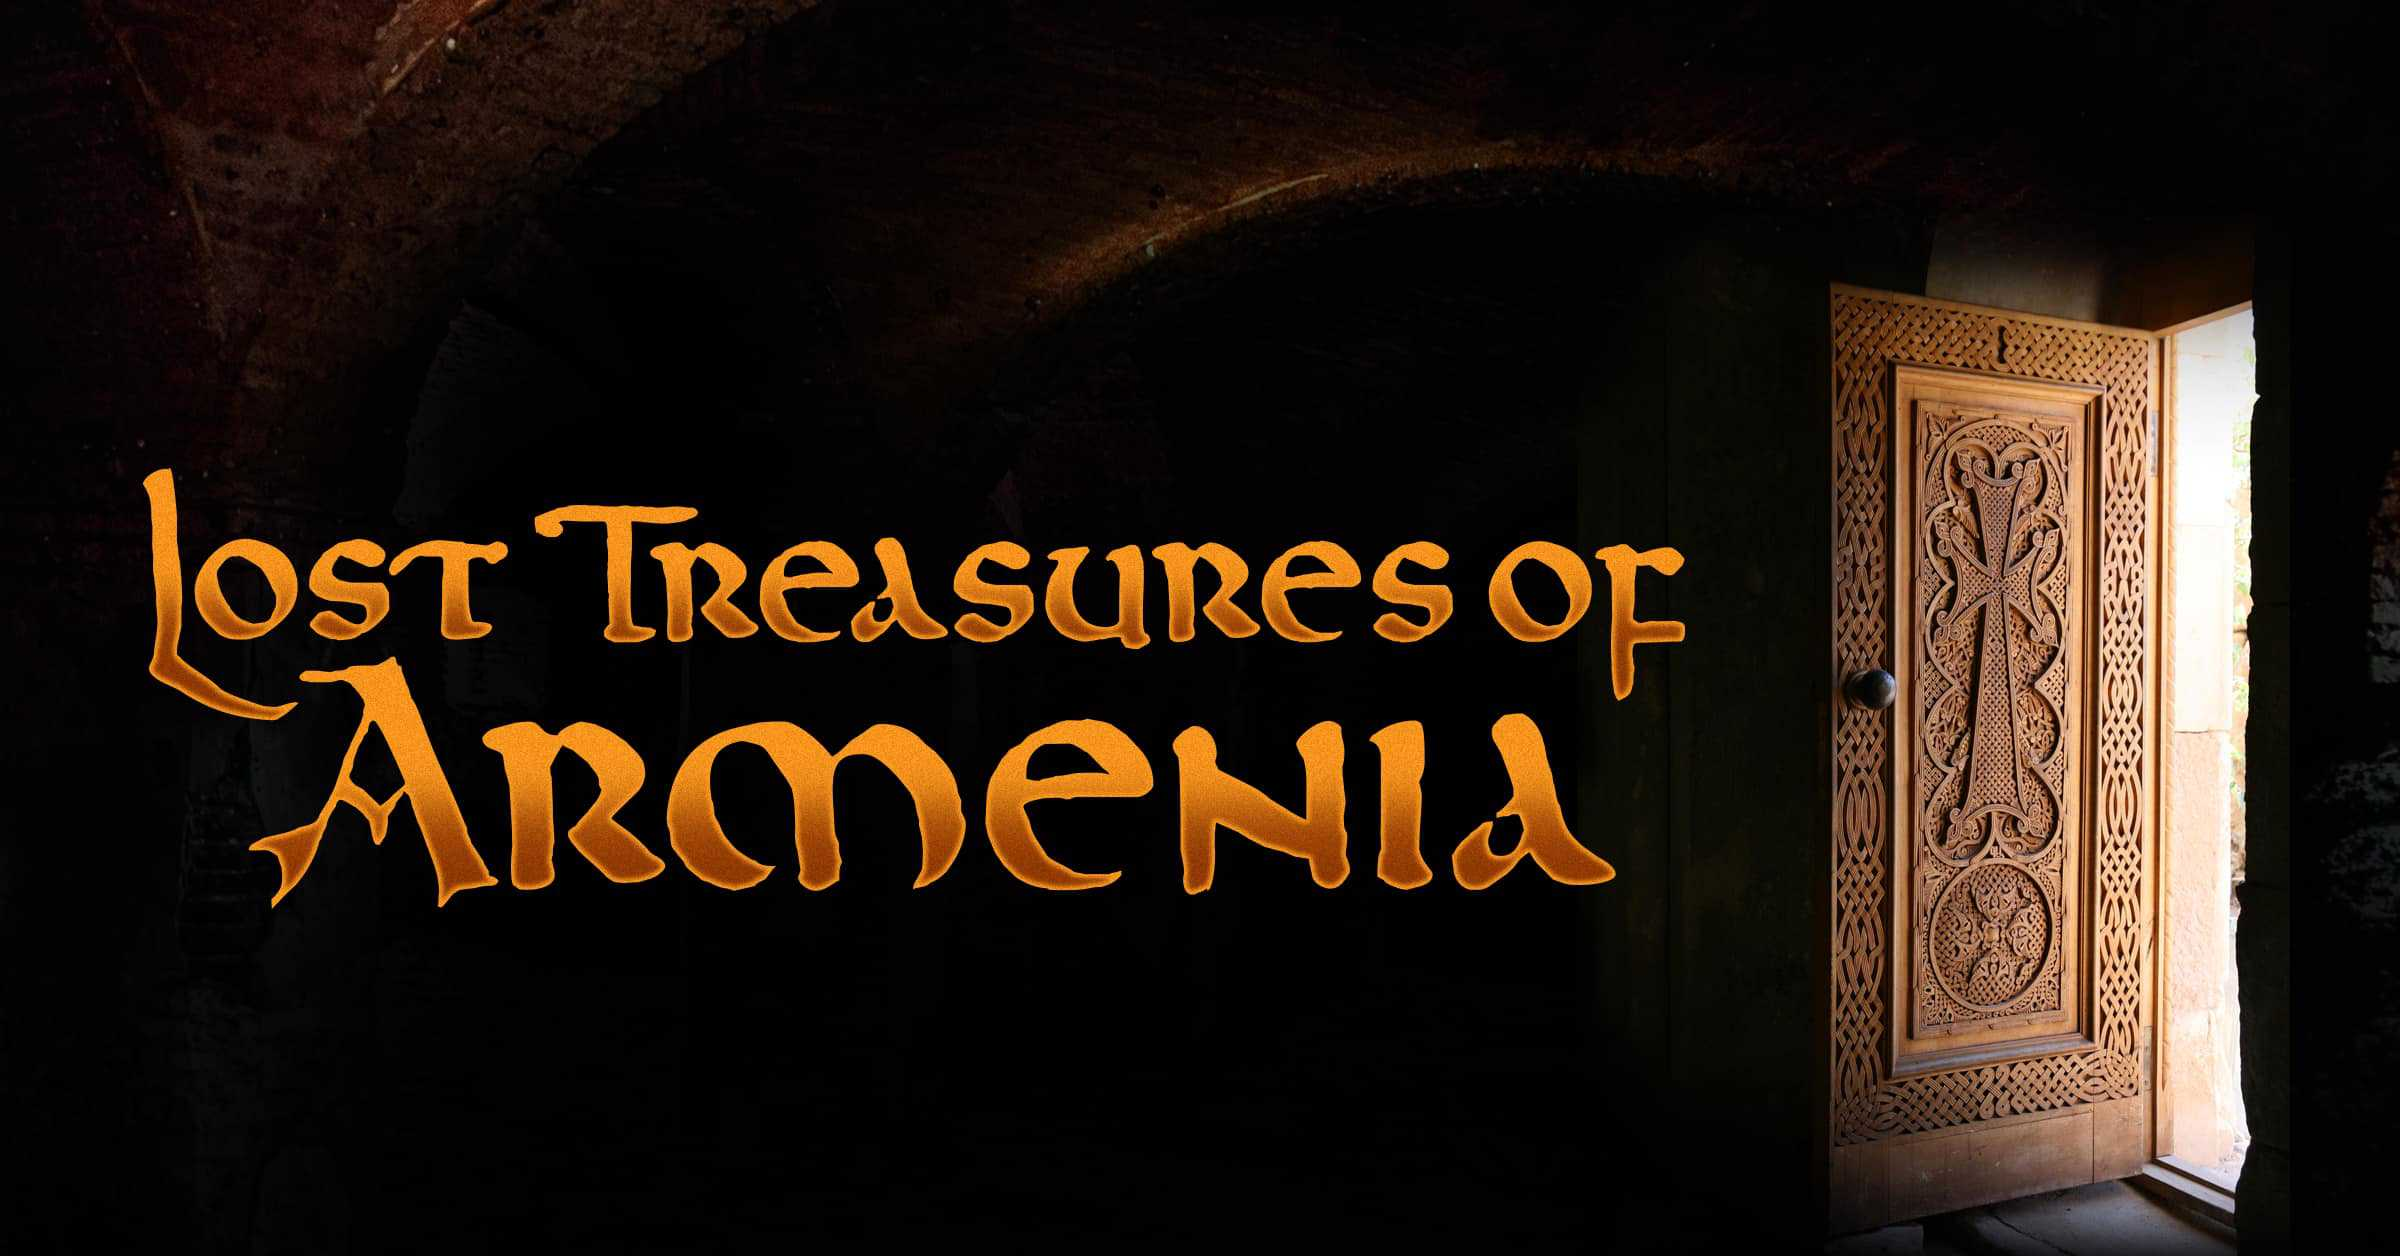 Lost Treasures of Armenia